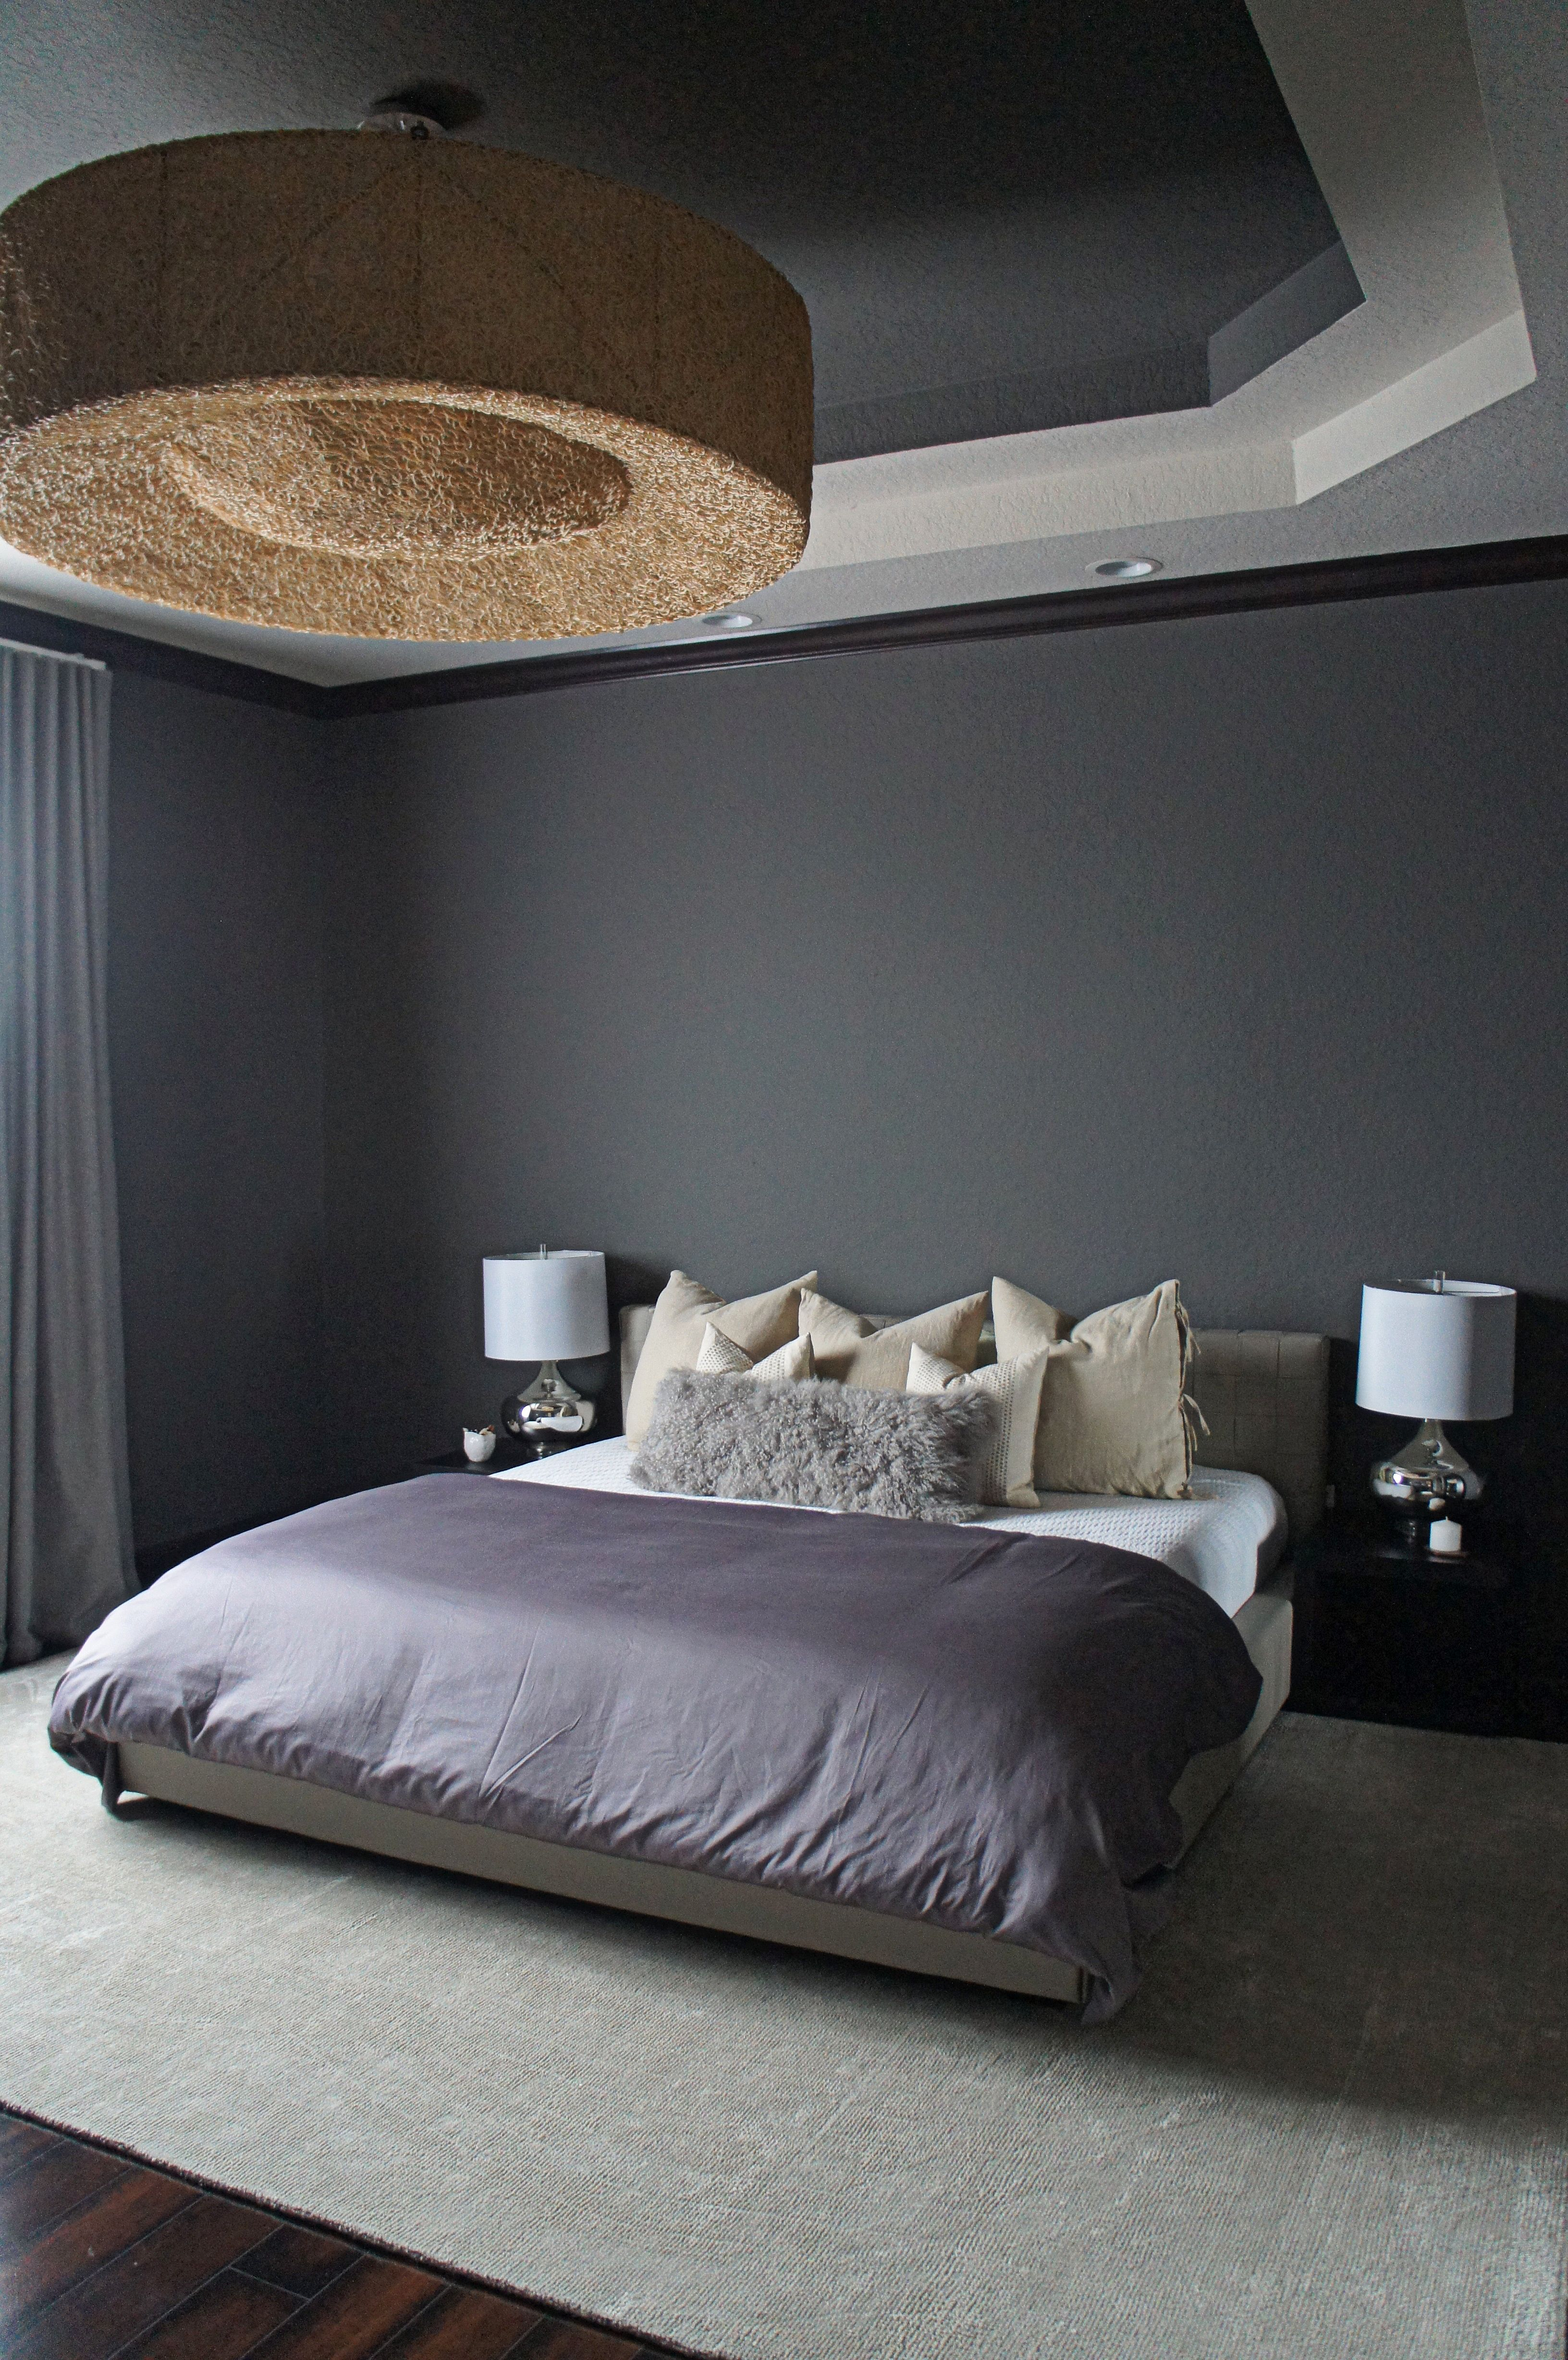 1000+ images about Interiors on Pinterest